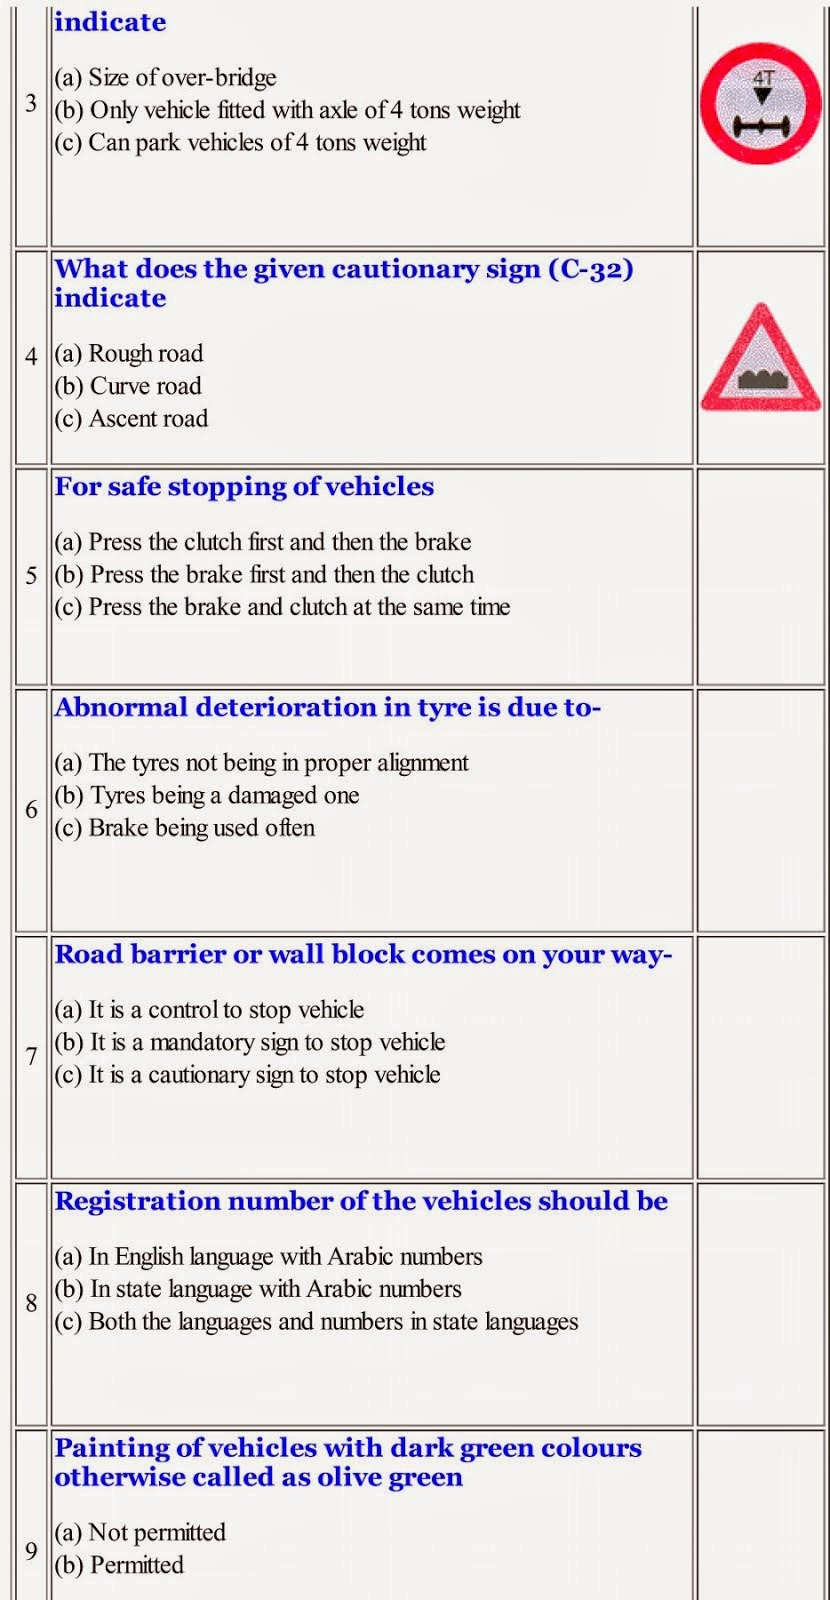 traffic model paper Driving license model test questions  signal other traffic and then pull into the street c proceed with caution when there is no traffic near by to cause an accident 9 on having changed your residential address from one to another, you should notify the rto within : a ten (10) days.